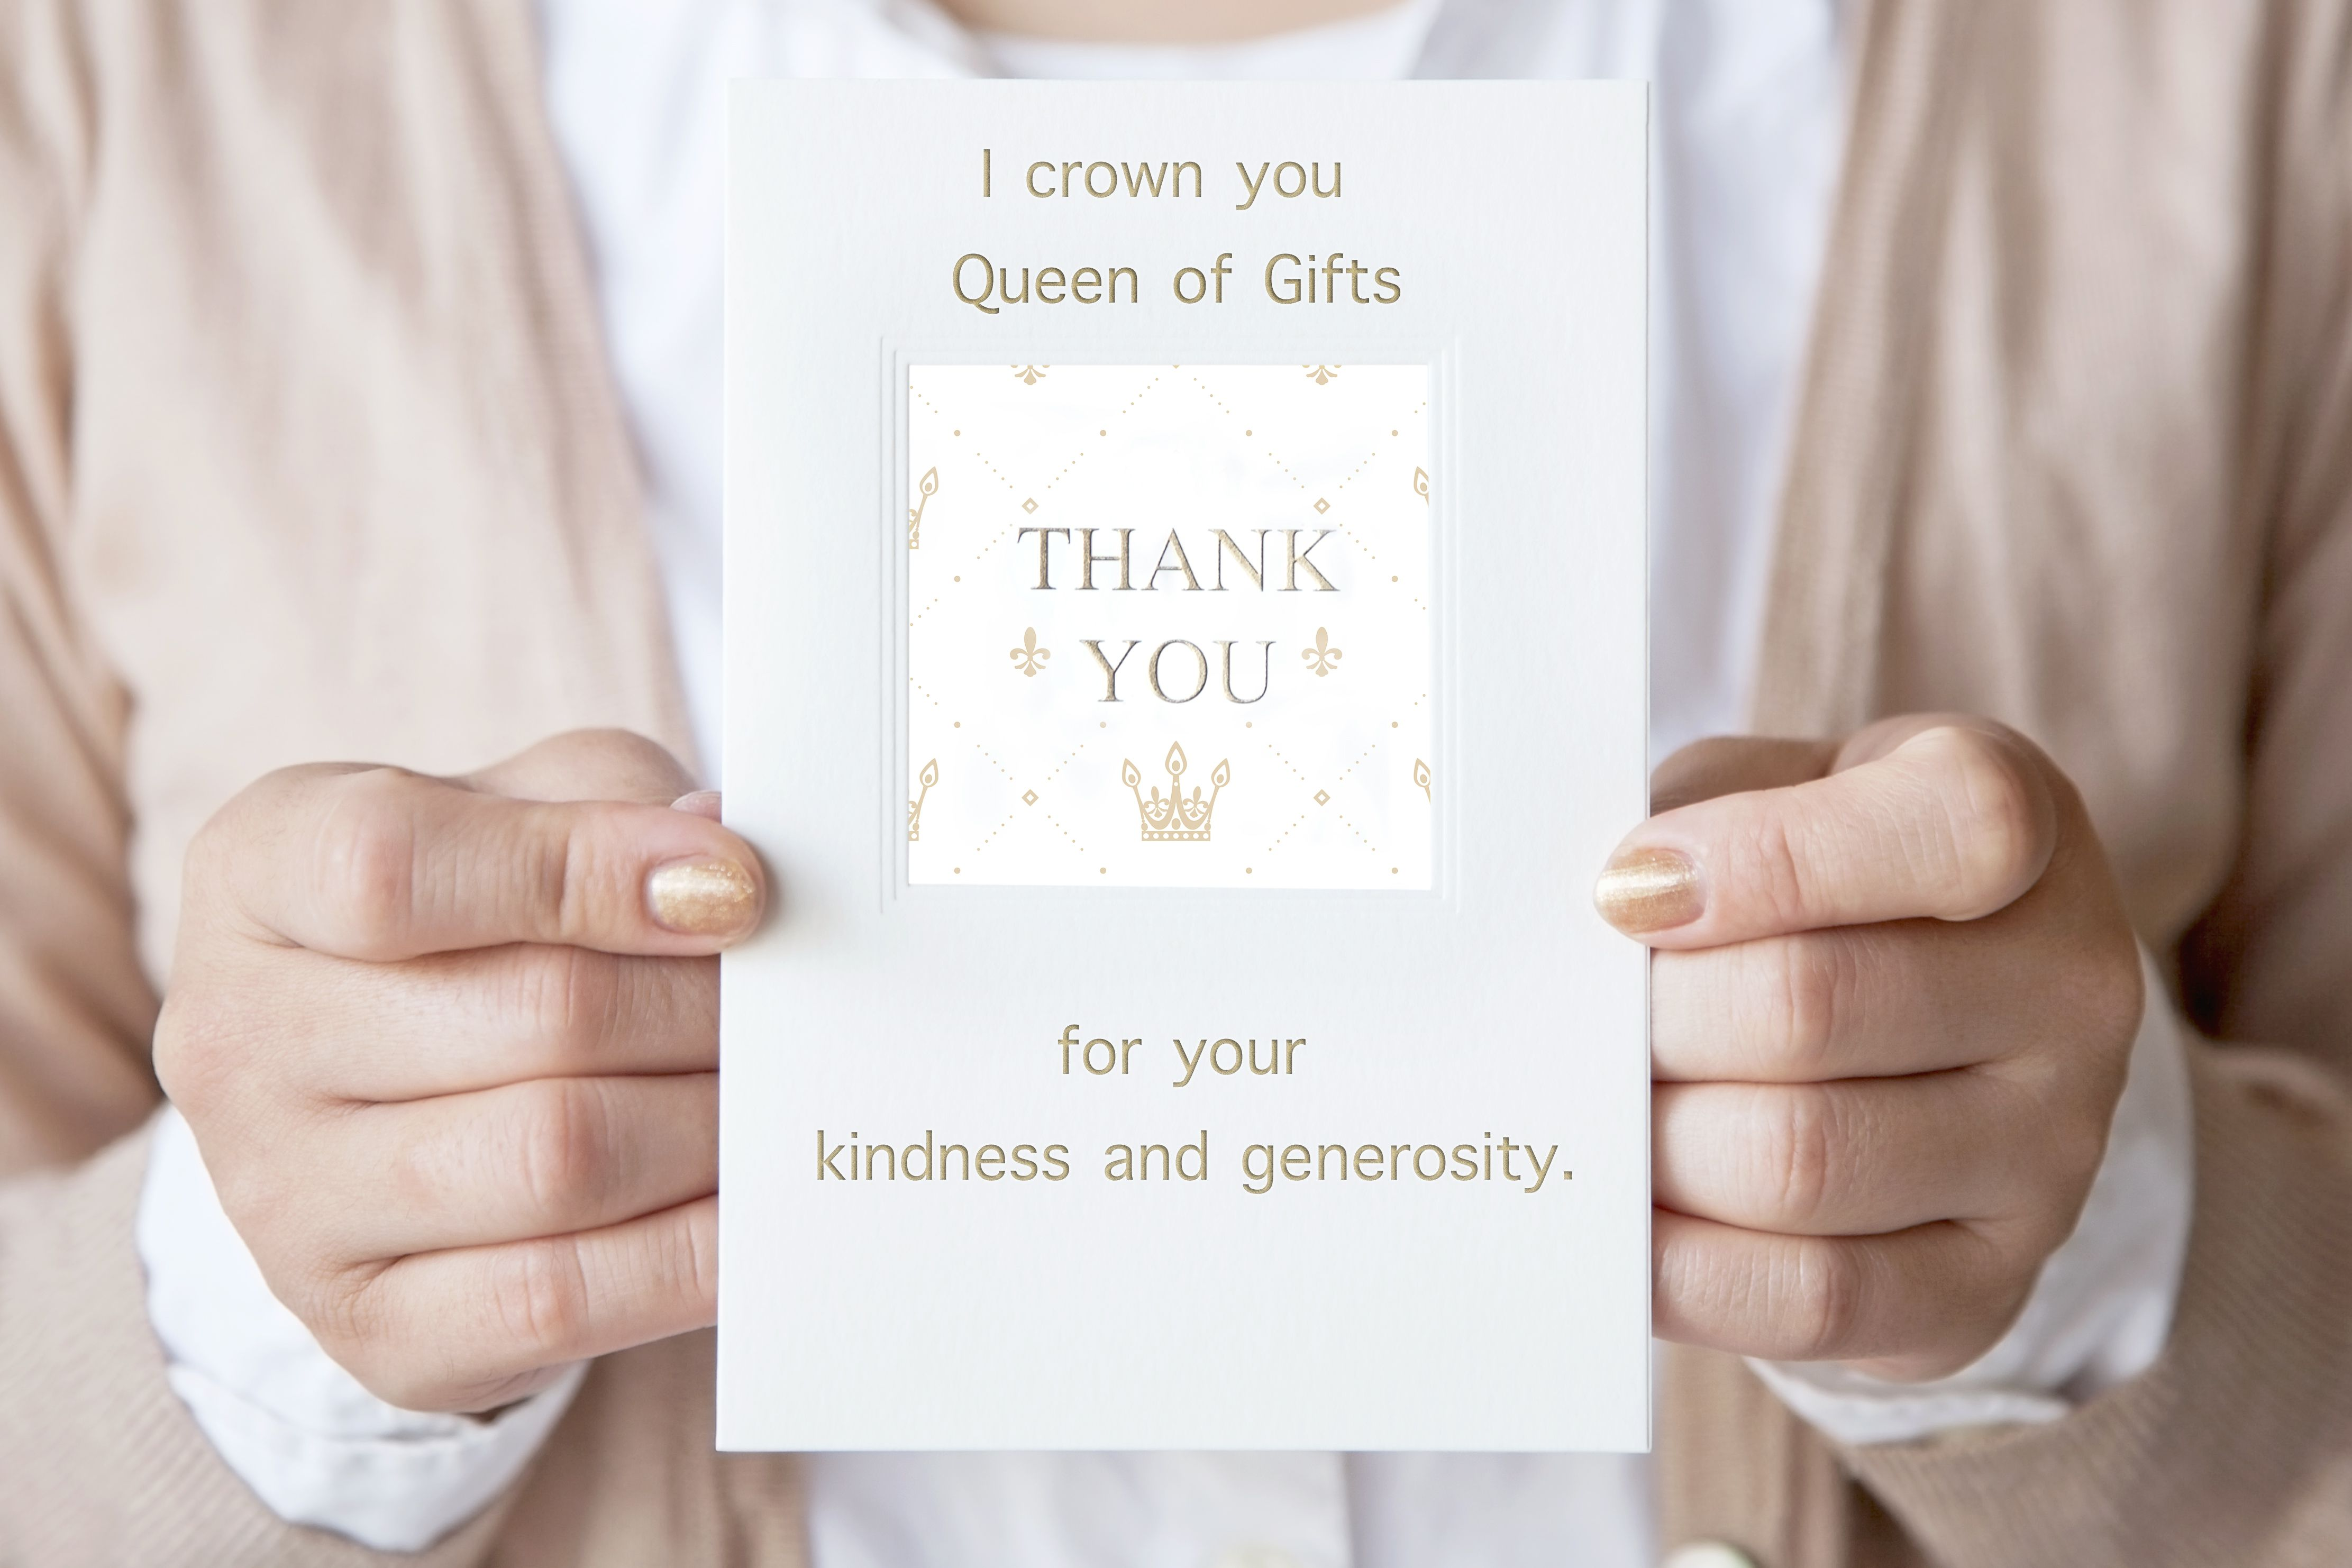 003 Unique Thank You Card Wording Baby Shower Example  Note For Money Someone Who Didn't Attend HostesFull